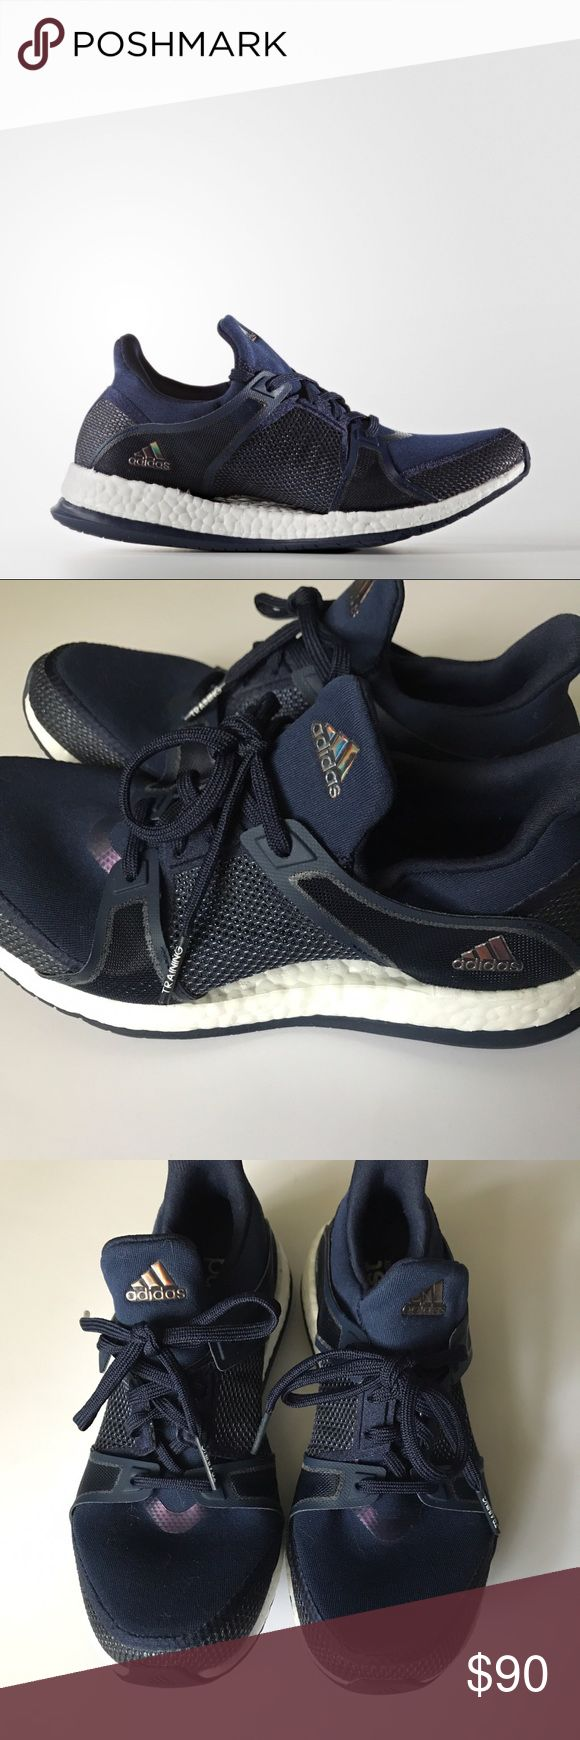 {Adidas} PureBoost X, Navy Such an elusive shoe! I can't find this particular colorway for sale online anywhere! Adidas Pure Boost X TR in navy. Engineered for a woman's foot. Size 7. Brand new in box. Adidas Shoes